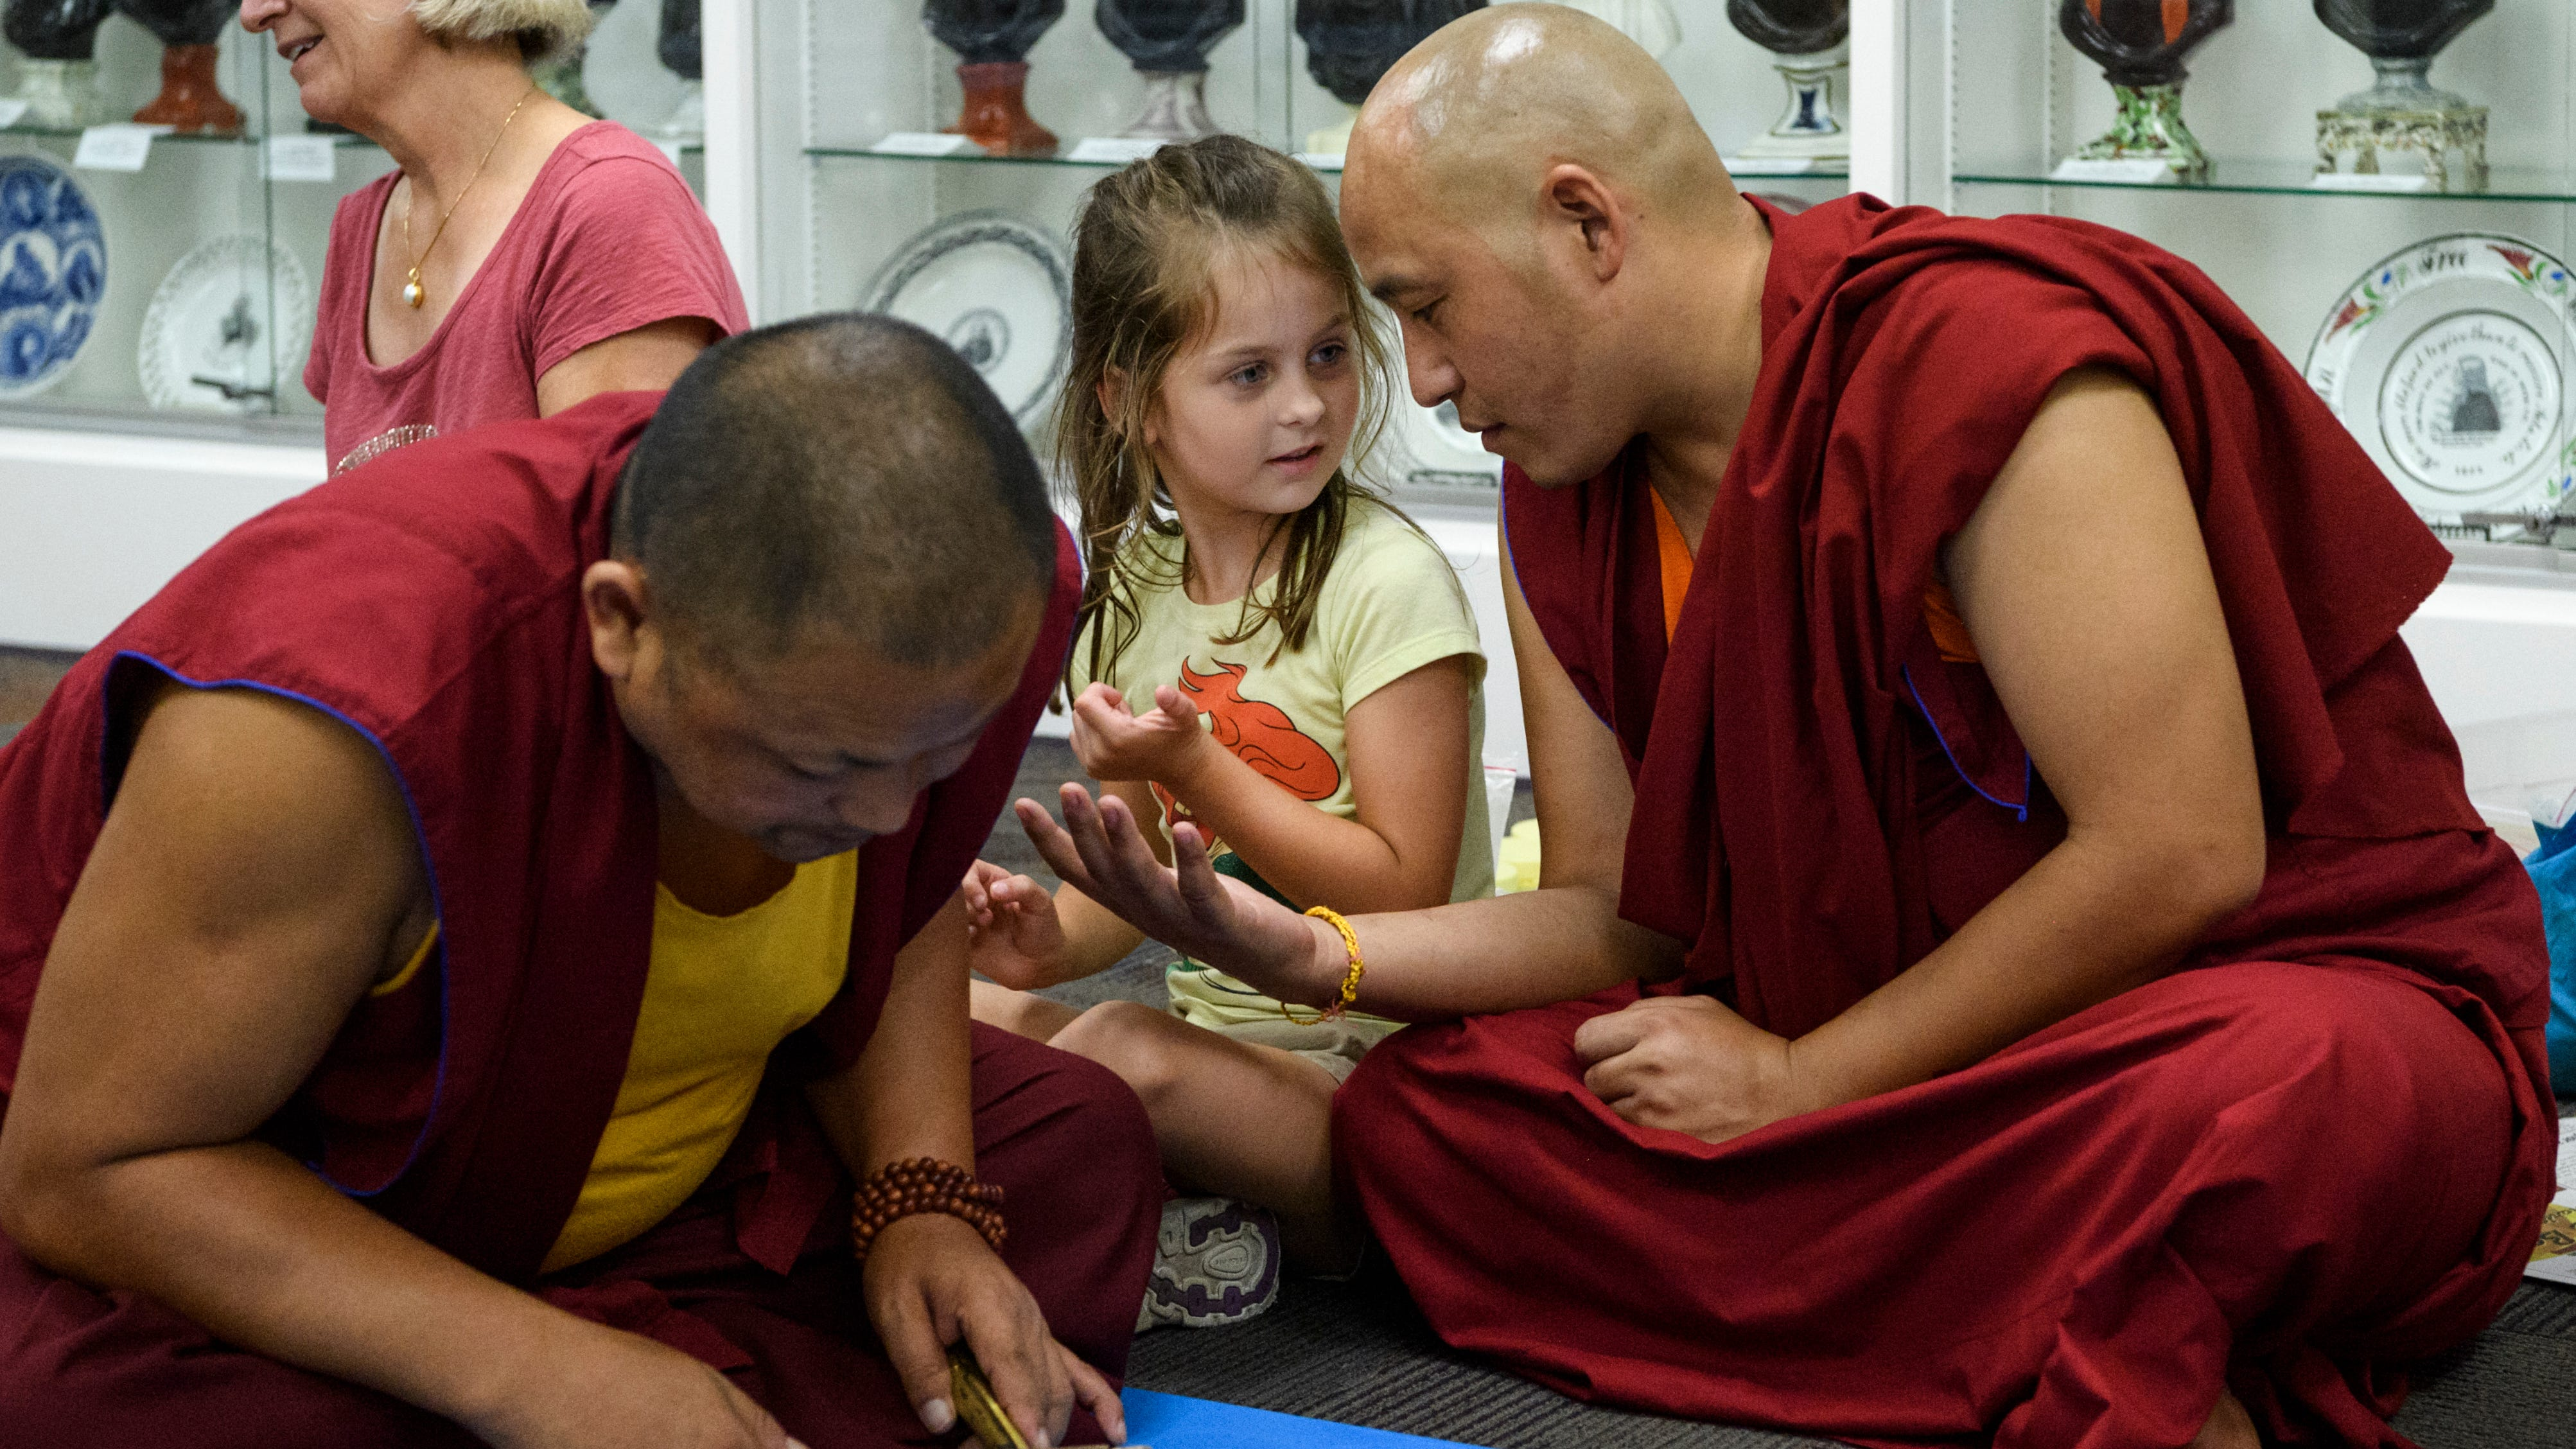 Monks spread sand to promote peace, prosperity in Evansville